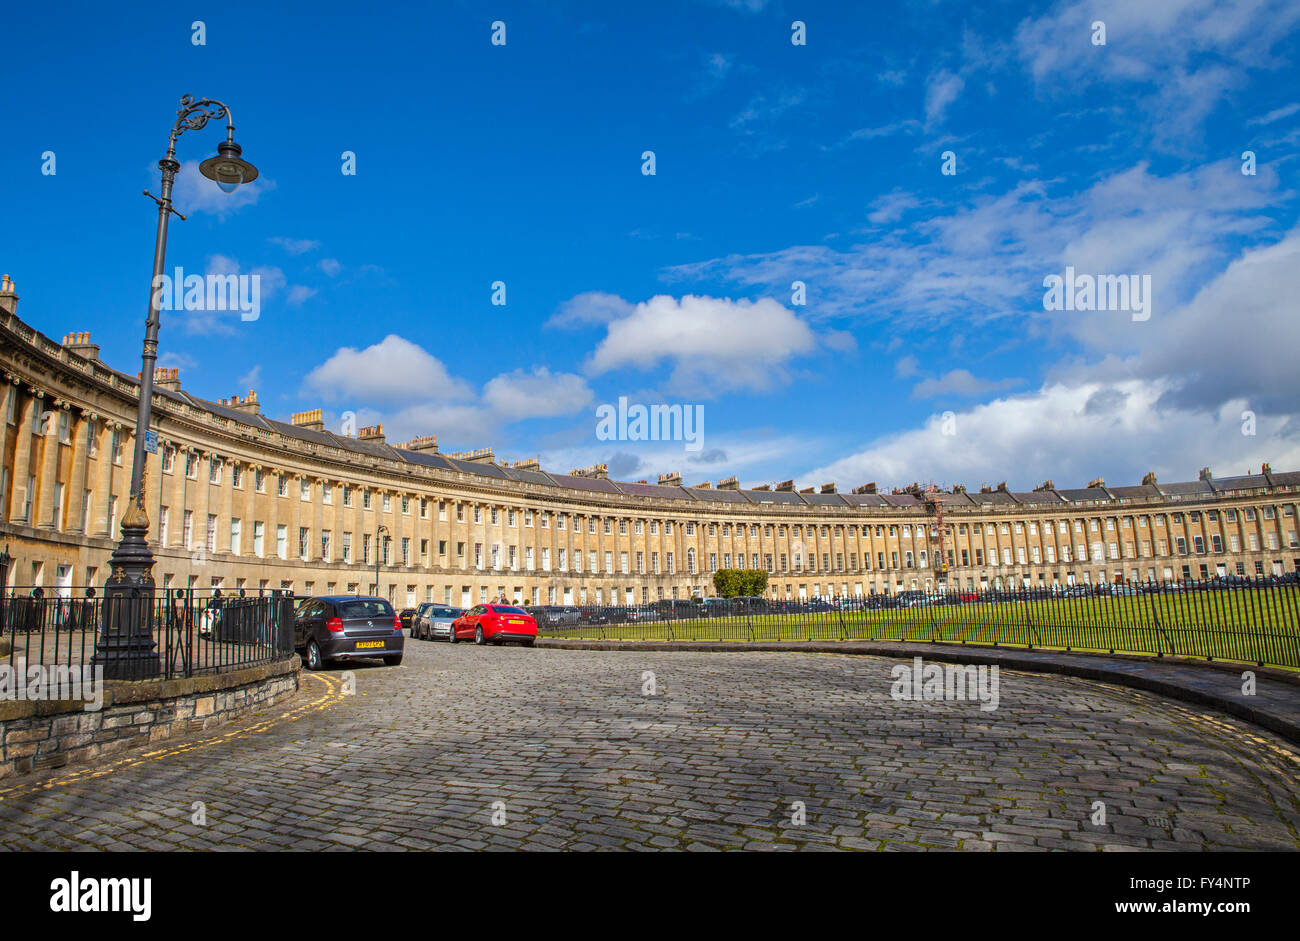 A view of the stunning Georgian architecture of the Royal Crescent in Bath, Somerset. - Stock Image